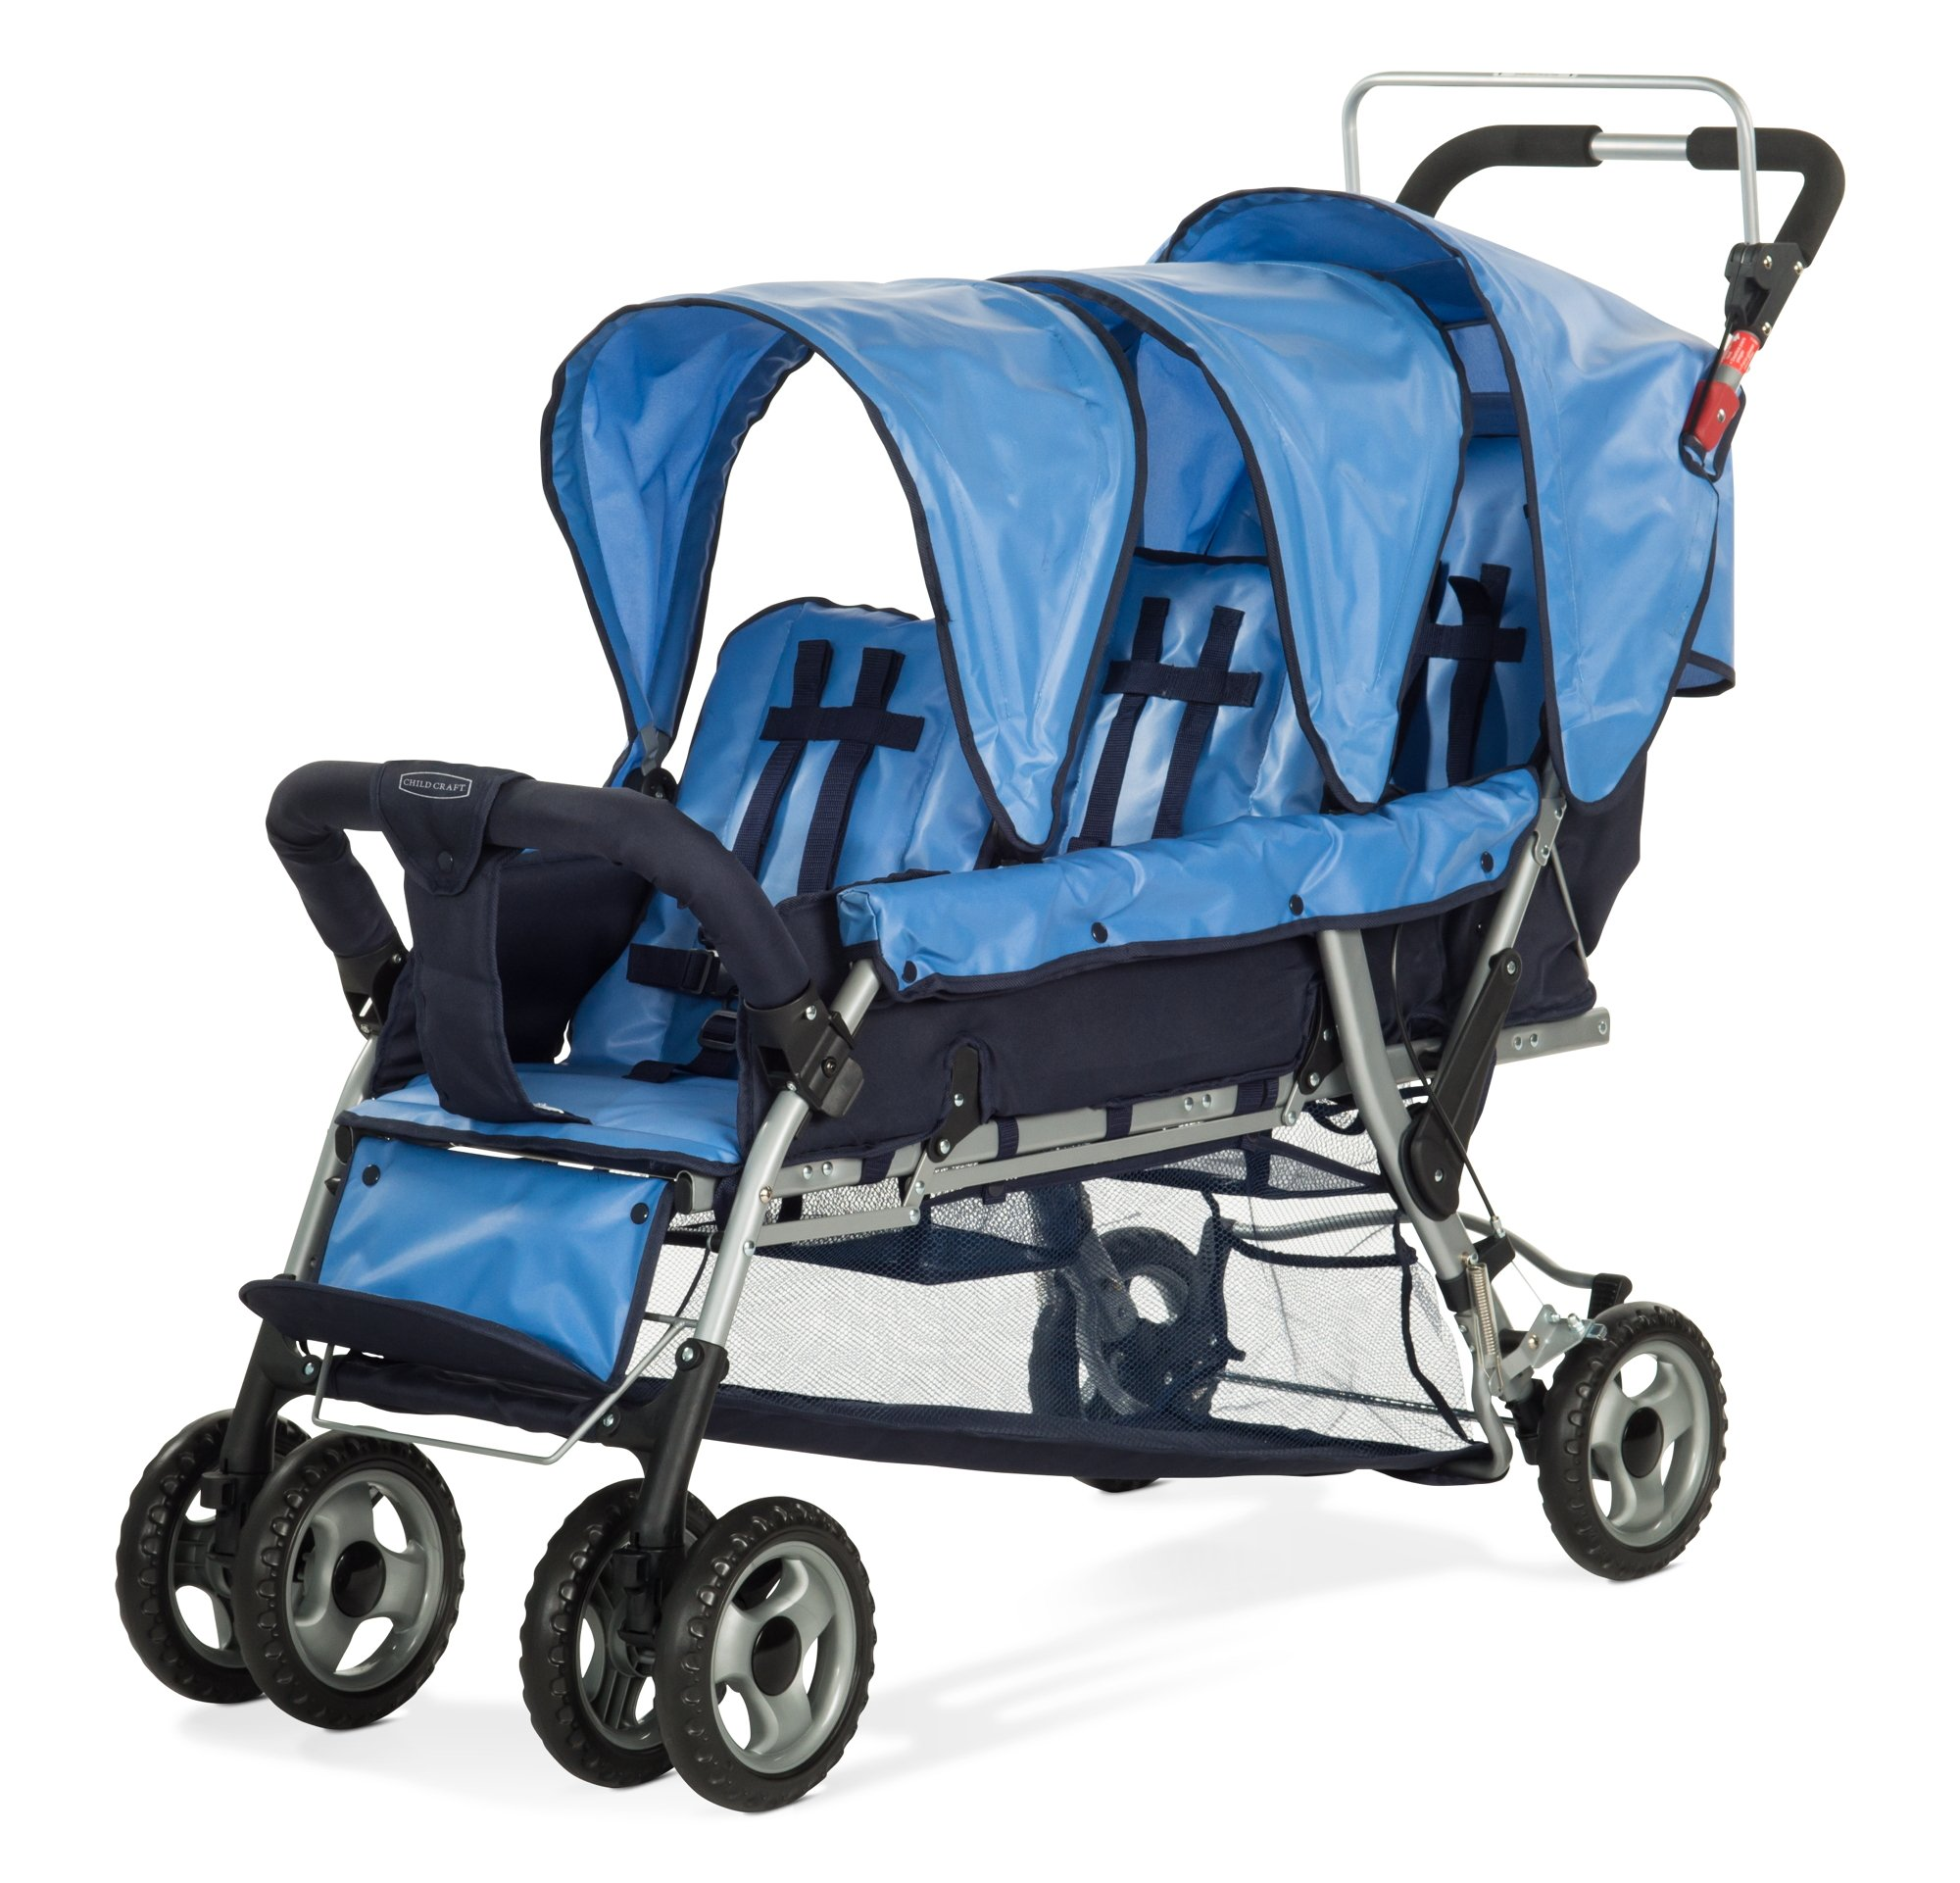 Child Craft Sport Multi-Child Triple Stroller, Regatta Blue by Childcraft